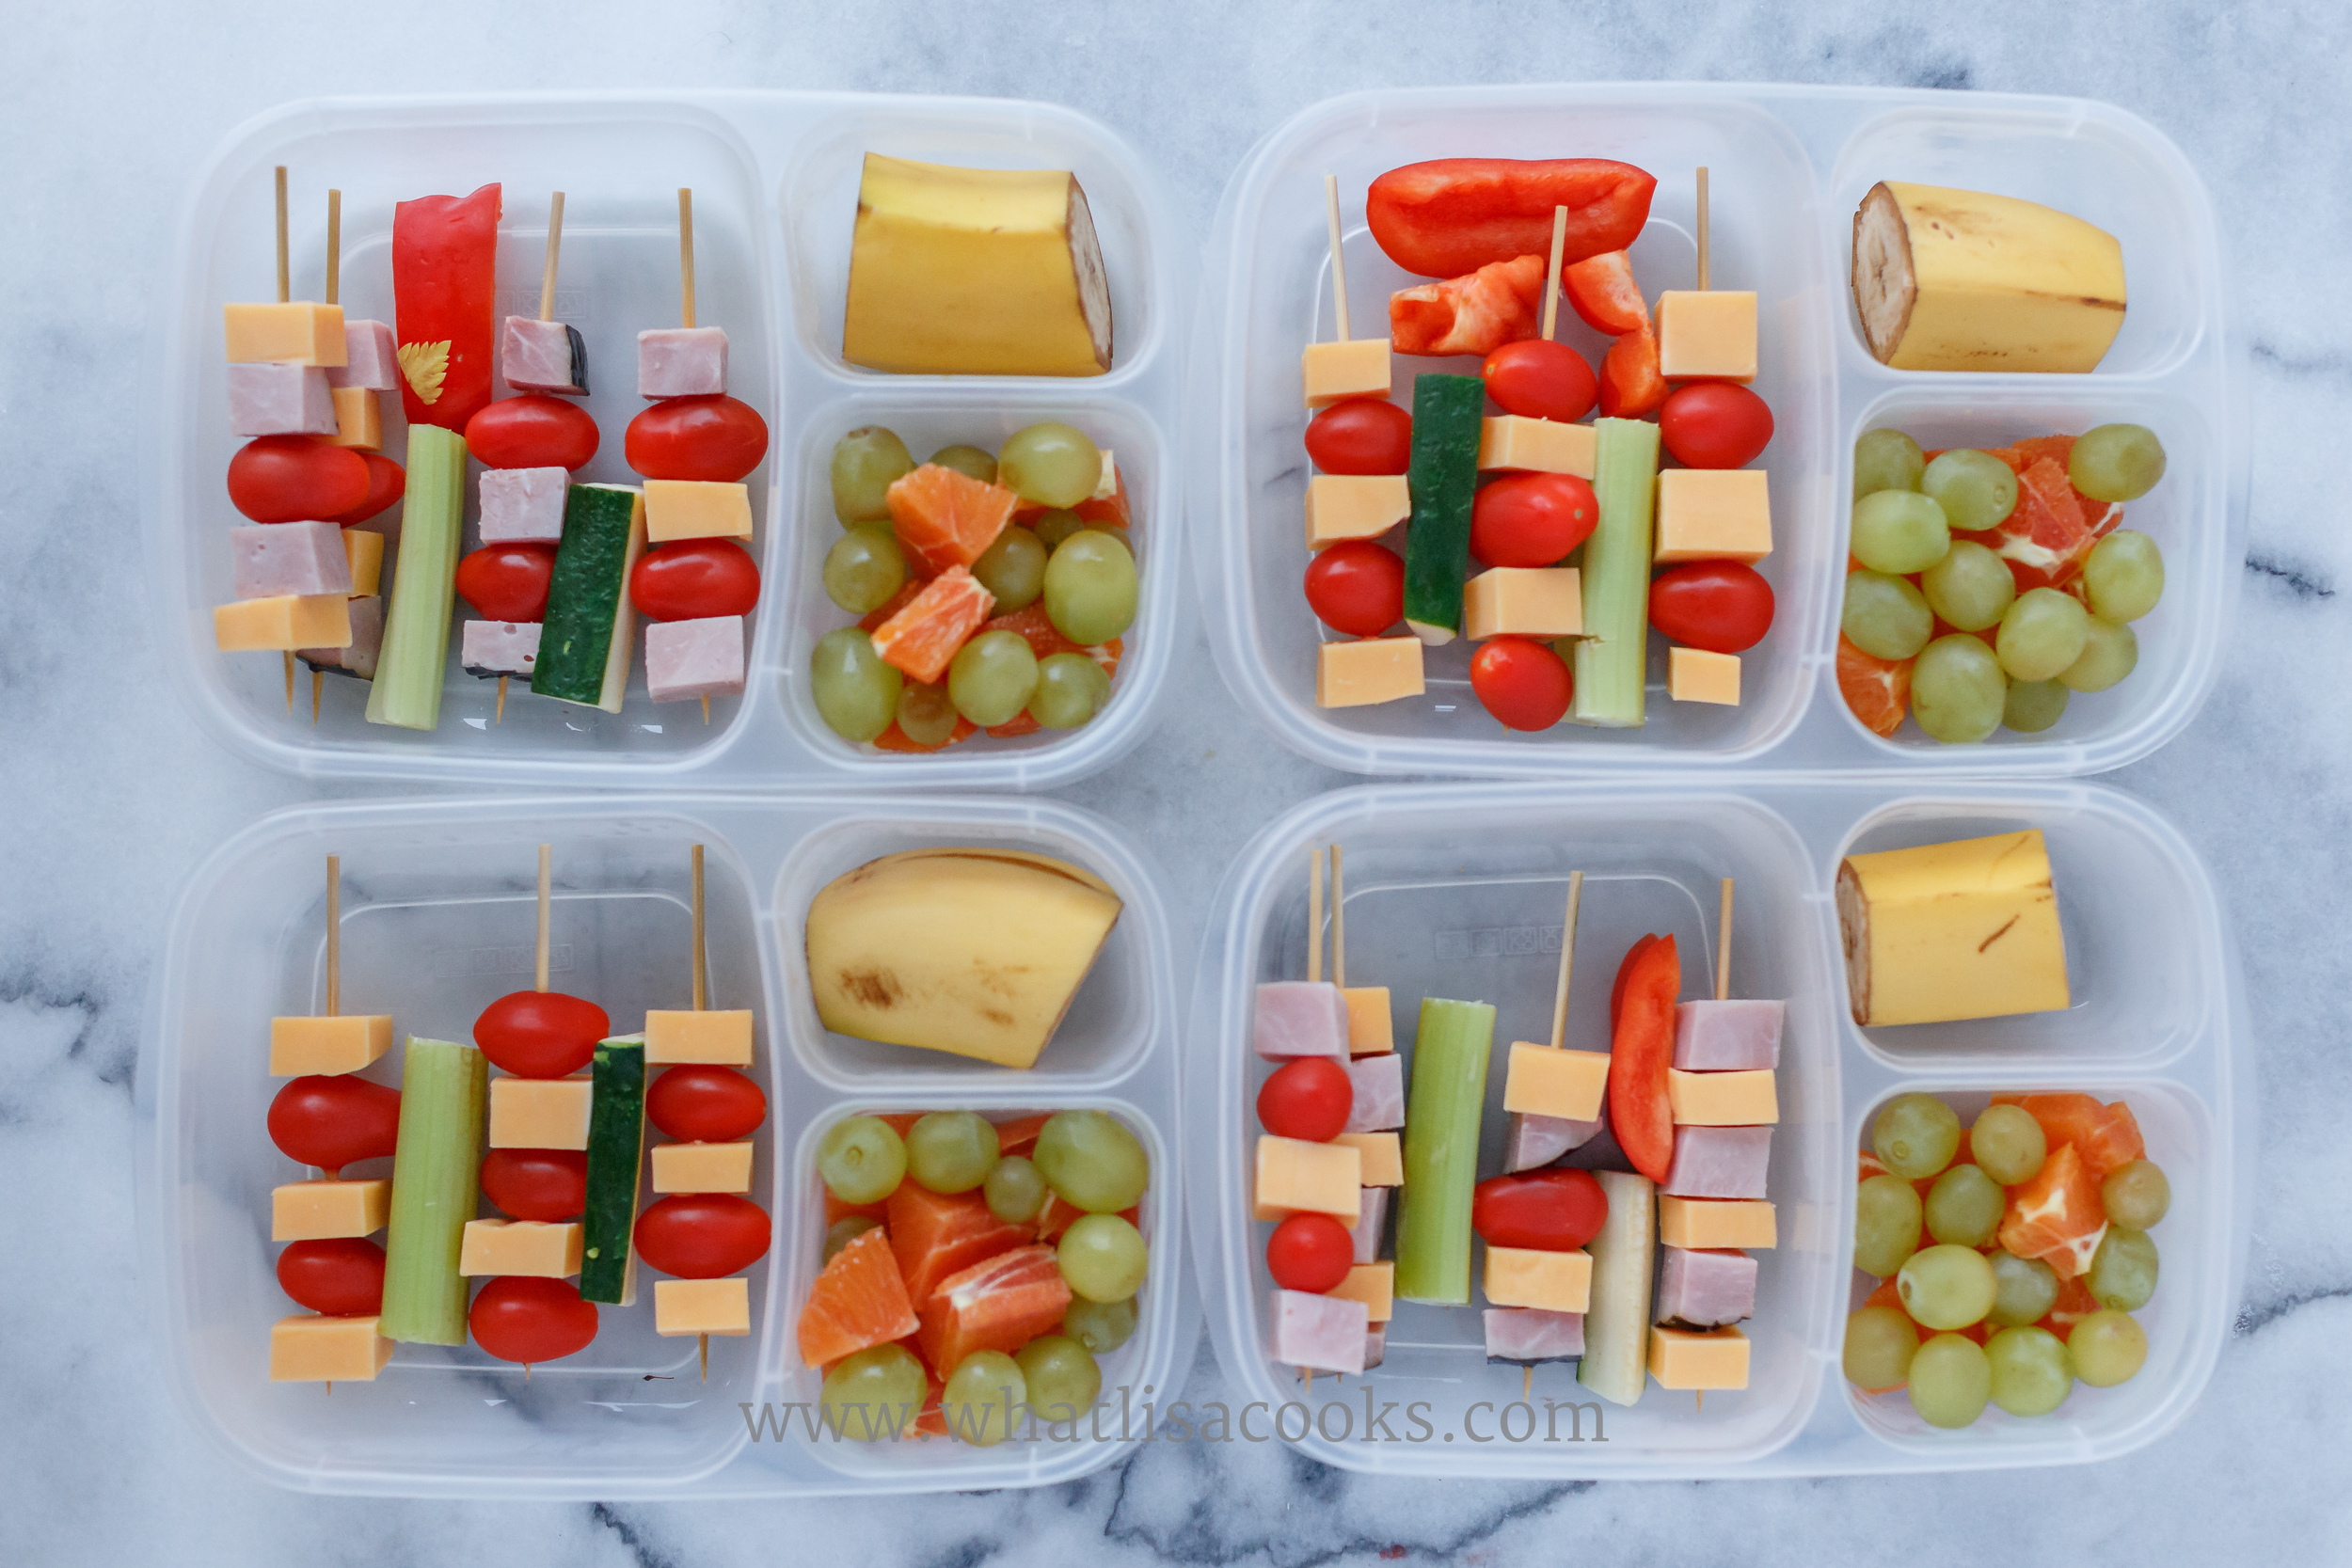 Skewers of ham, cheese, tomato, with carrot, celery and zucchini in between.  On the side there are grapes, orange bites, and banana.